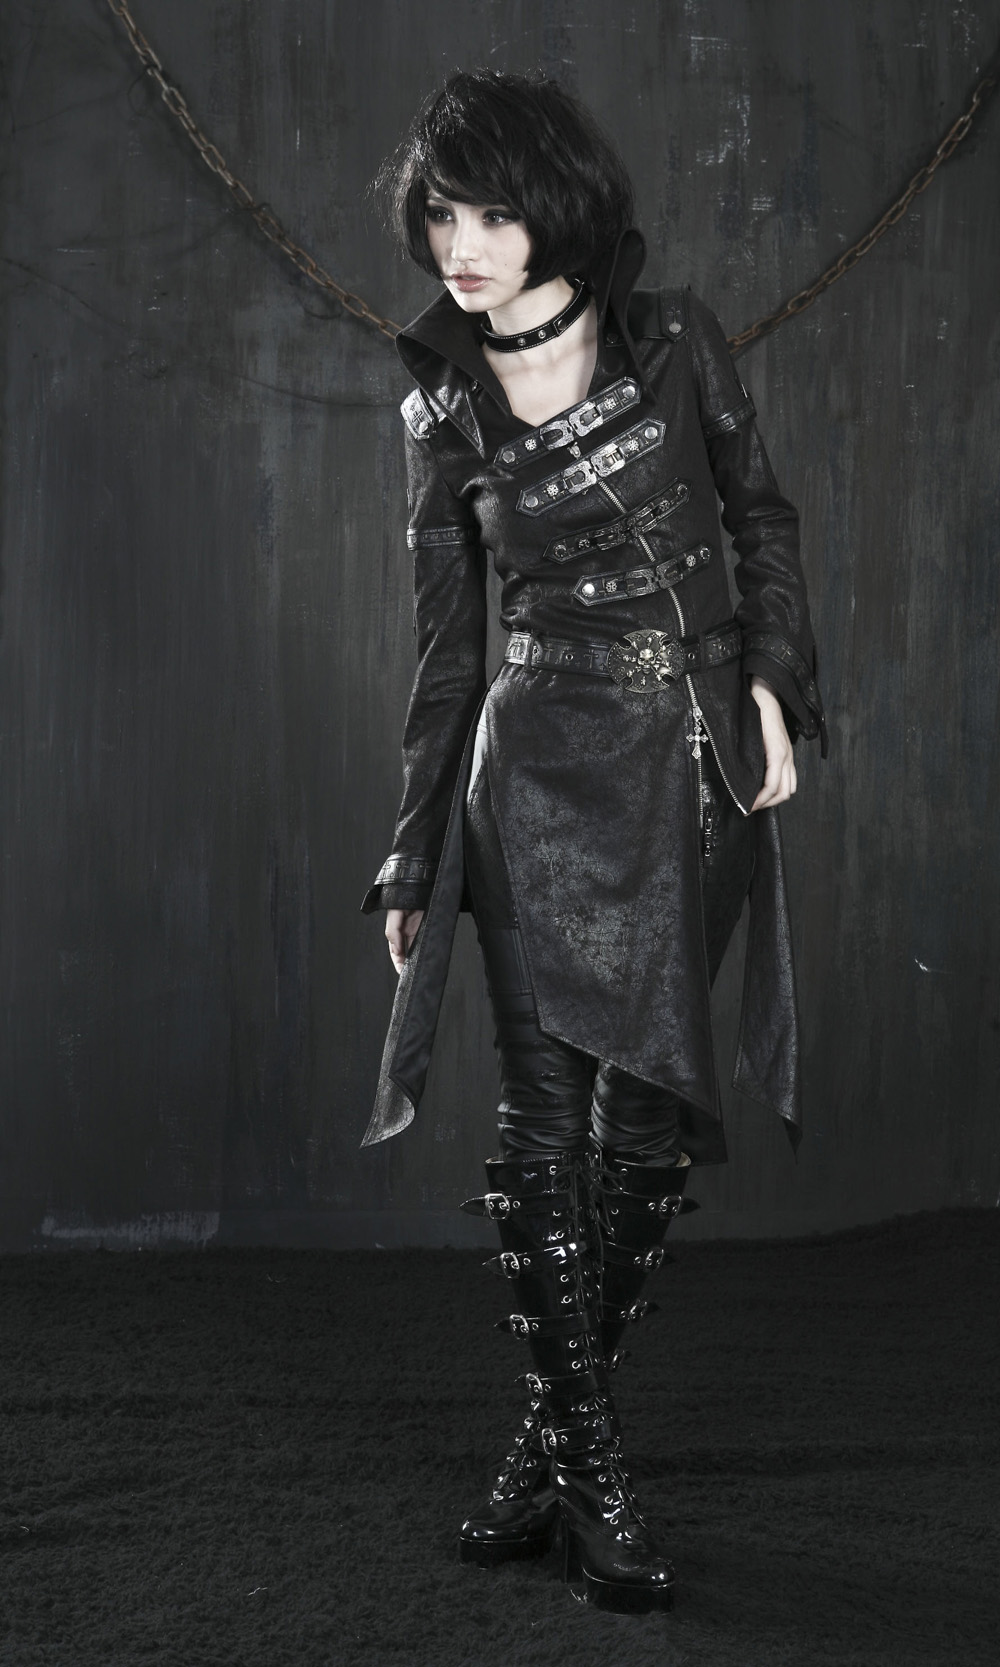 rebelsmarket_ladies_black_long_pleather_coat_steampunk_buckle_punk_rave_jacket_6_ship_coats_2.jpg